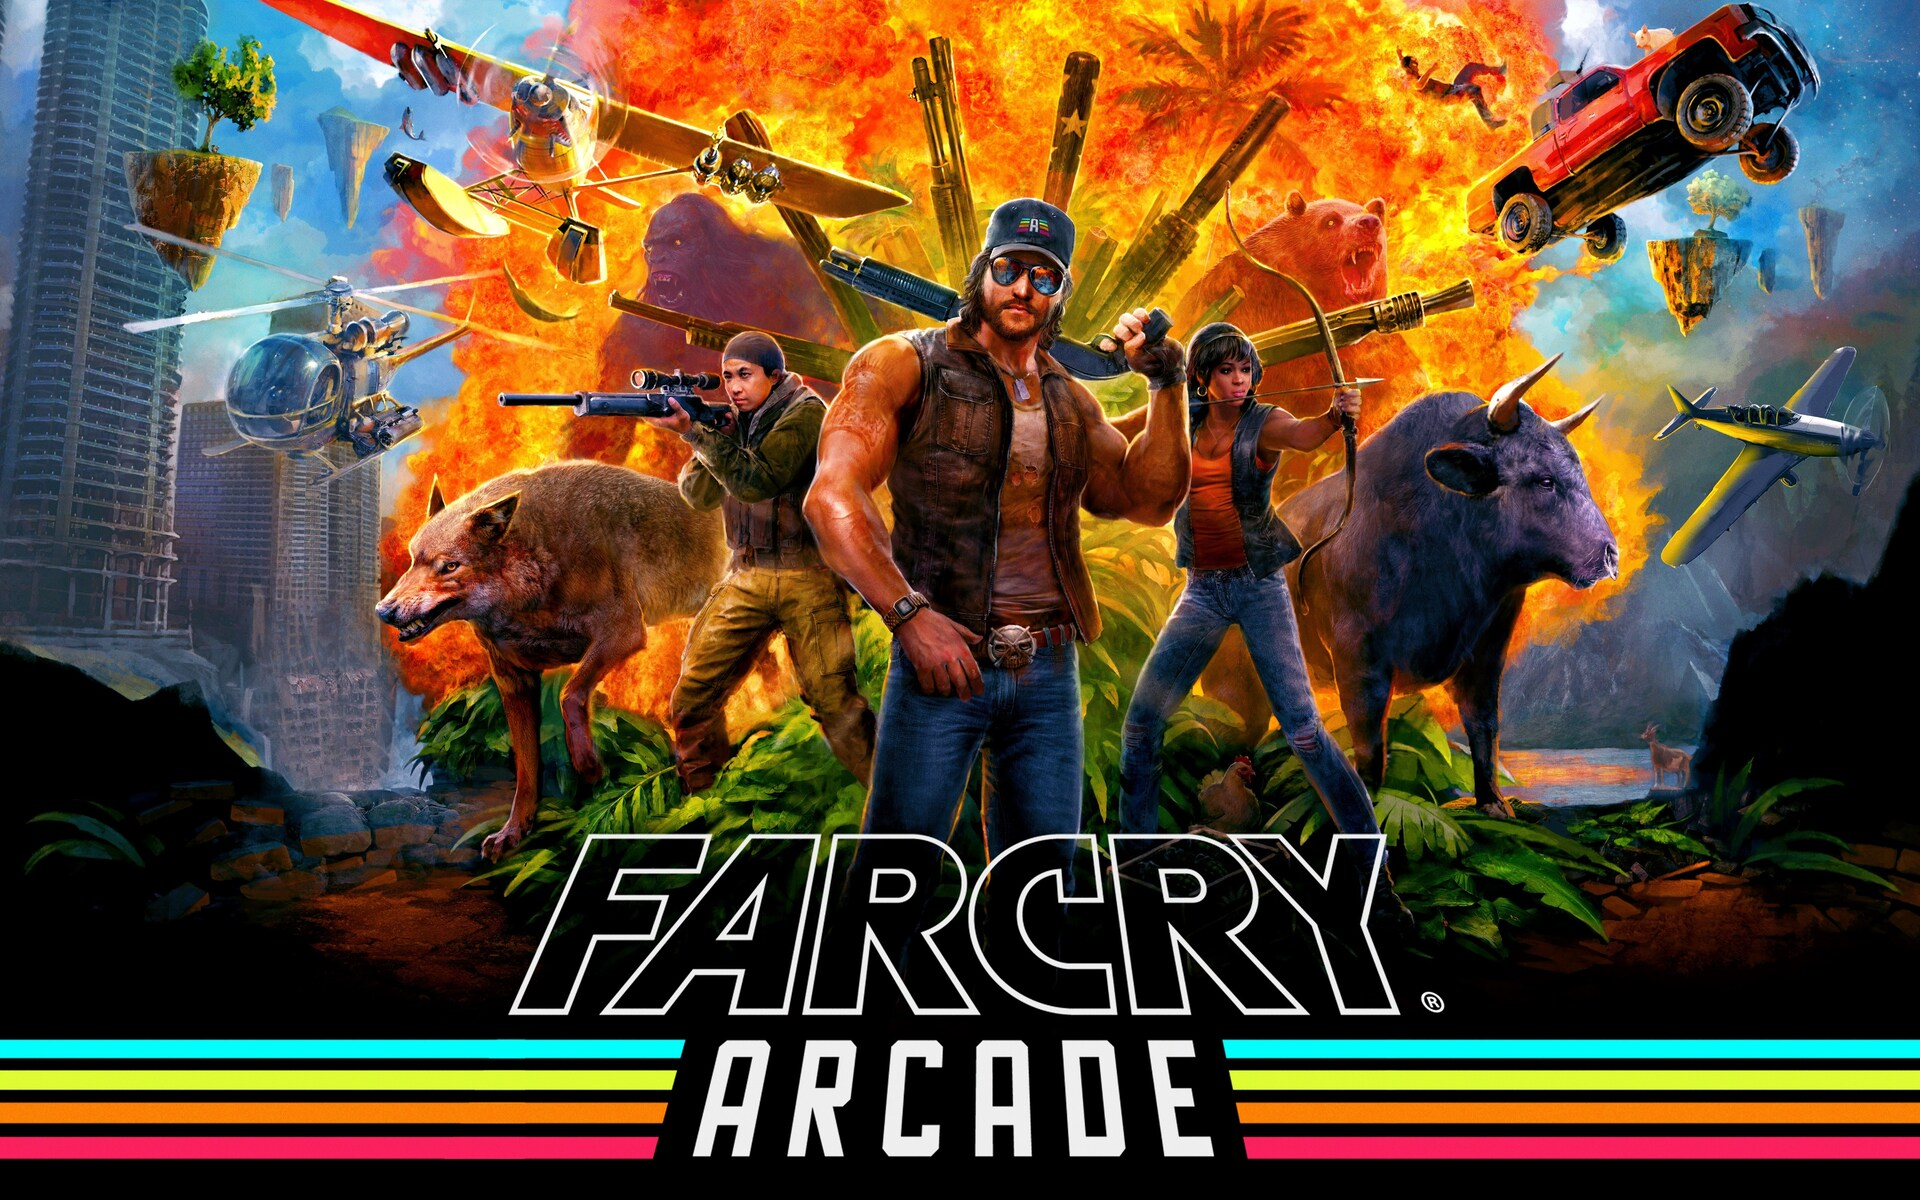 1920x1200 Far Cry 5 Arcade 2018 1080p Resolution Hd 4k Wallpapers